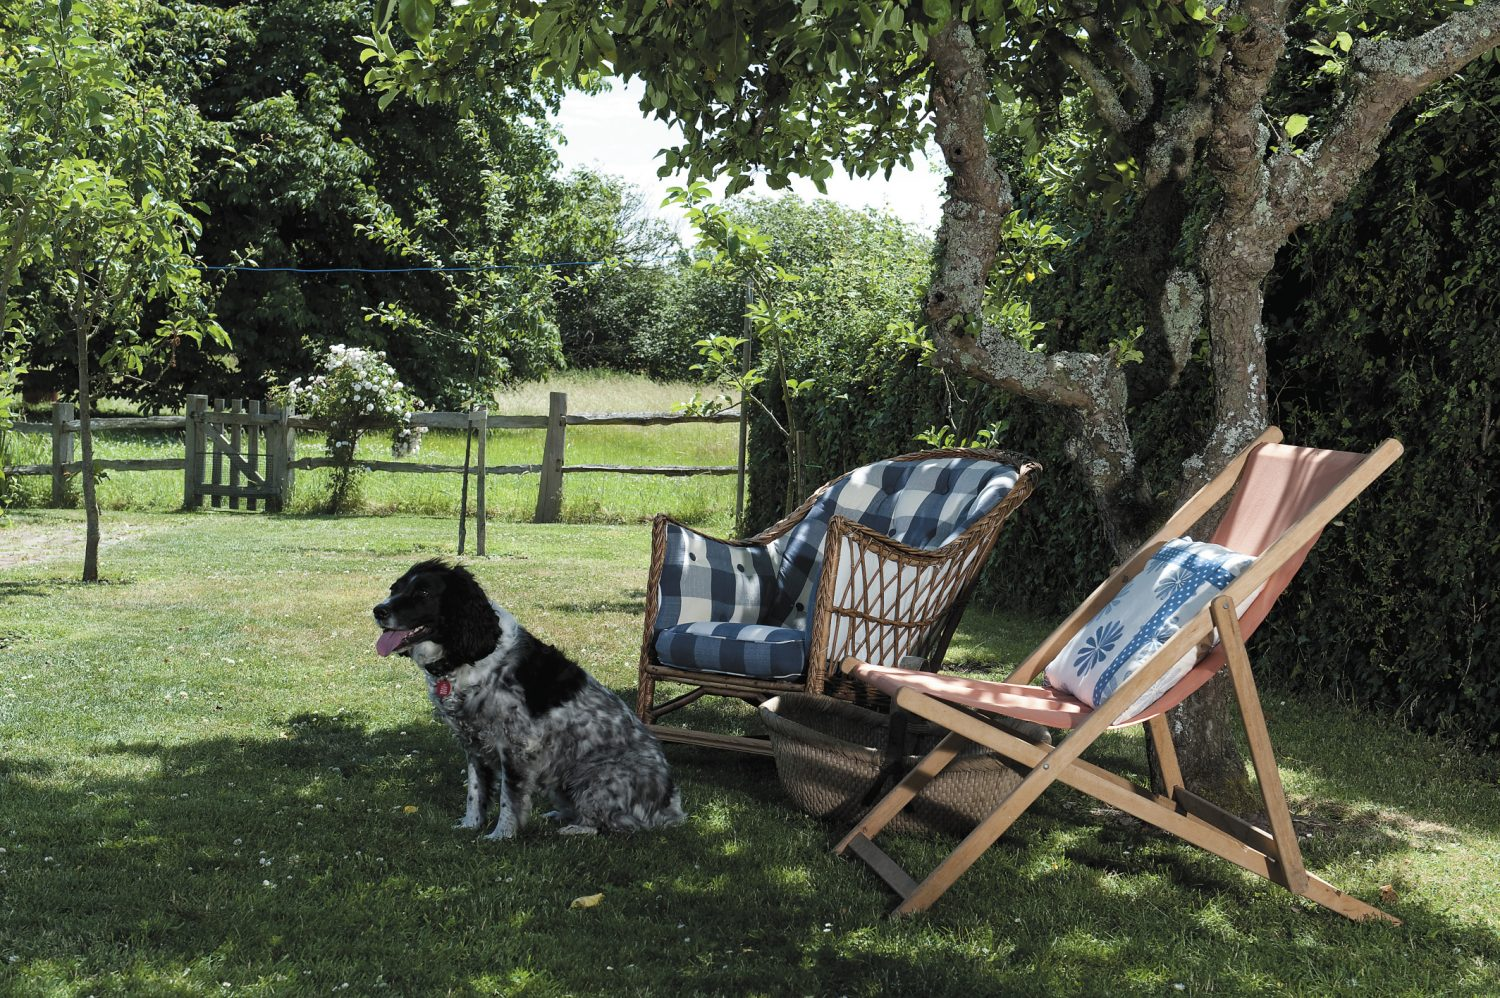 In the shade of a spreading apple tree a deckchair and cane seat have been placed in a conversational group